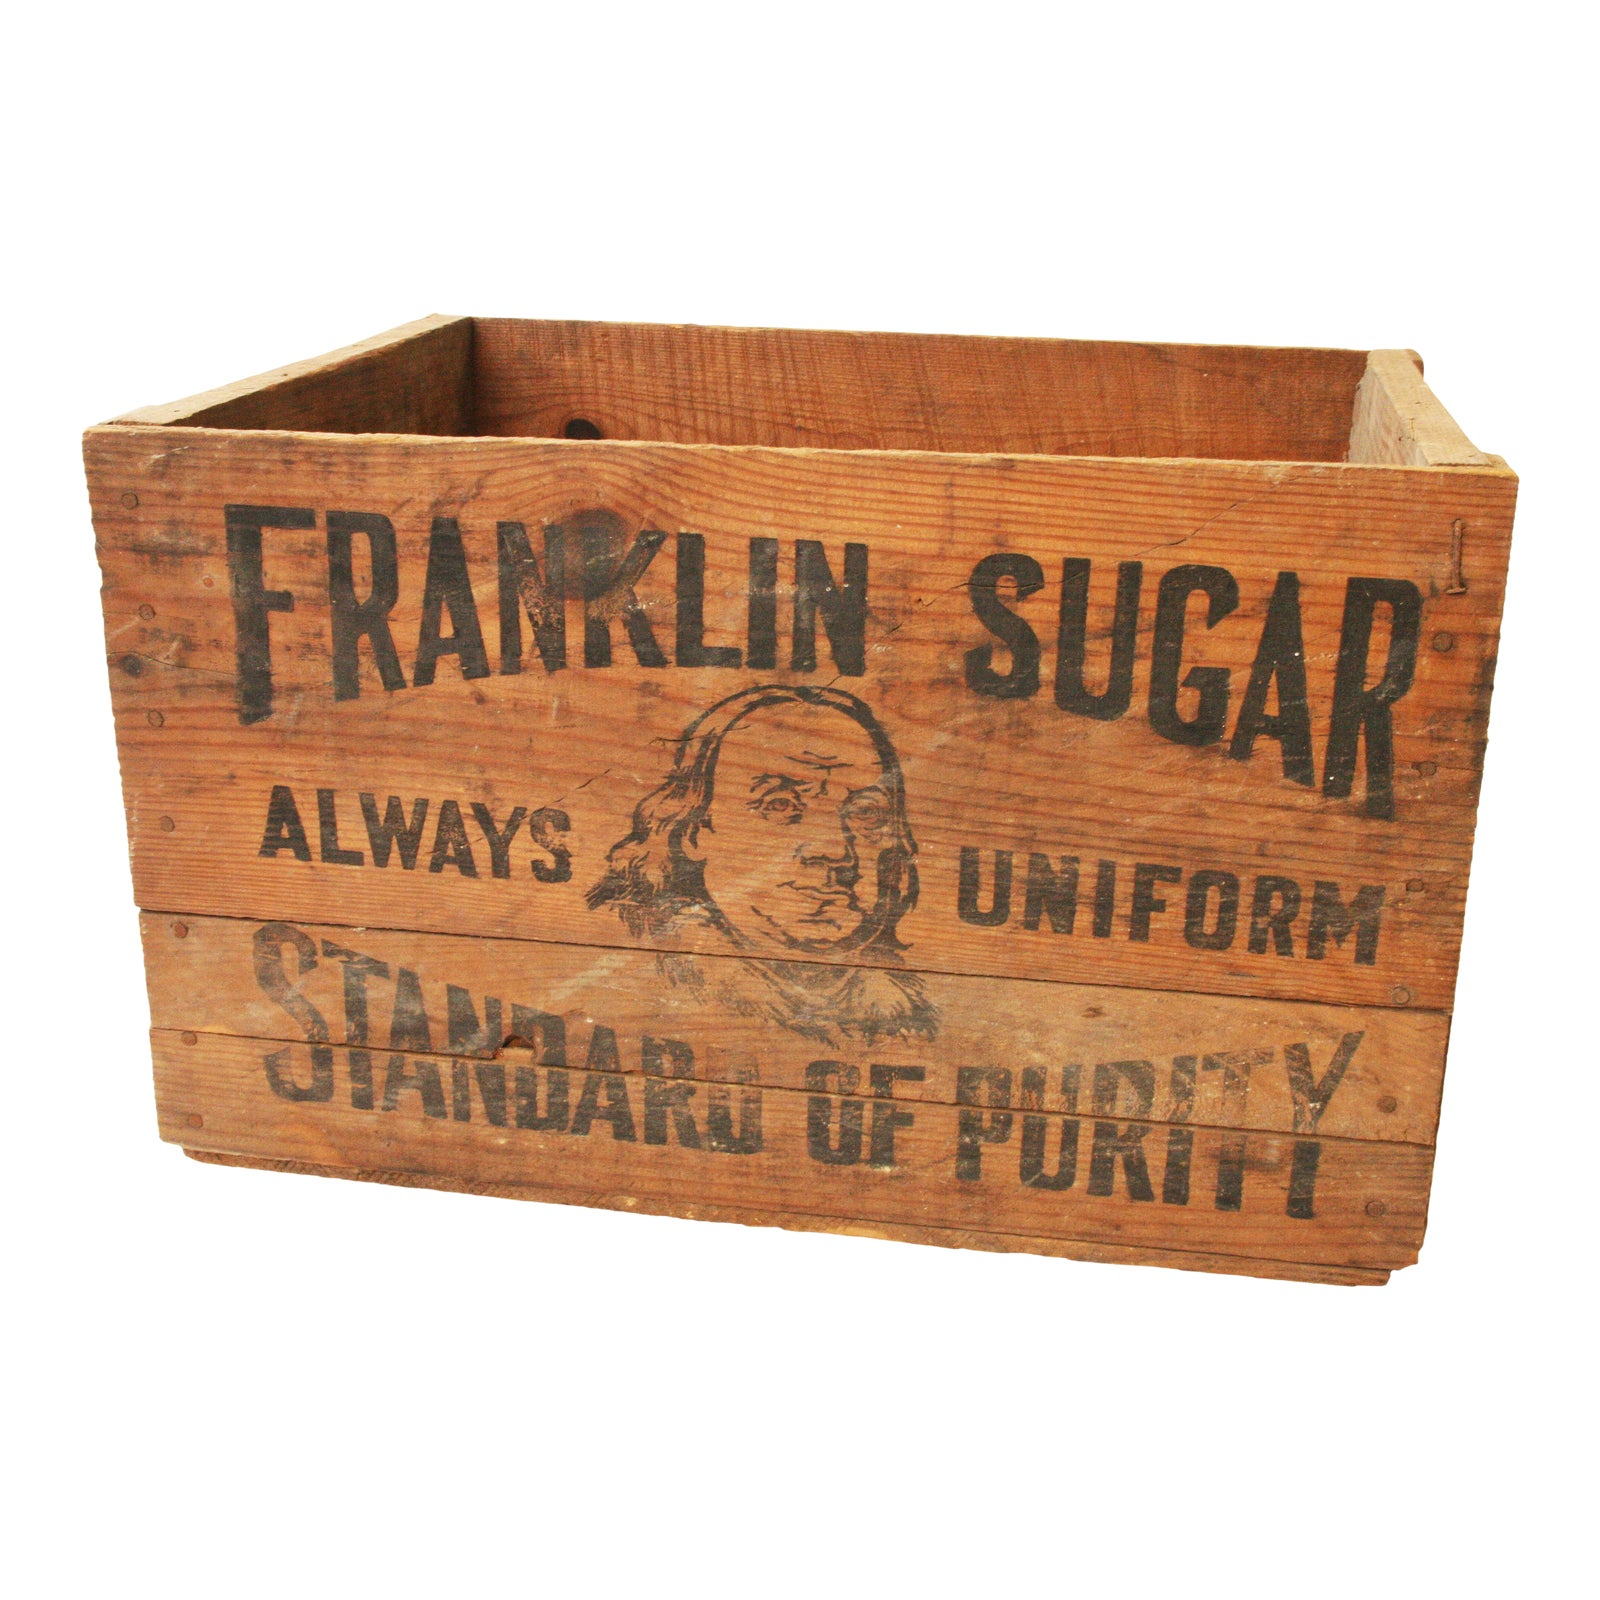 Vintage Benjamin Franklin Sugar Industrial Wood Shipping Crate - Chairish